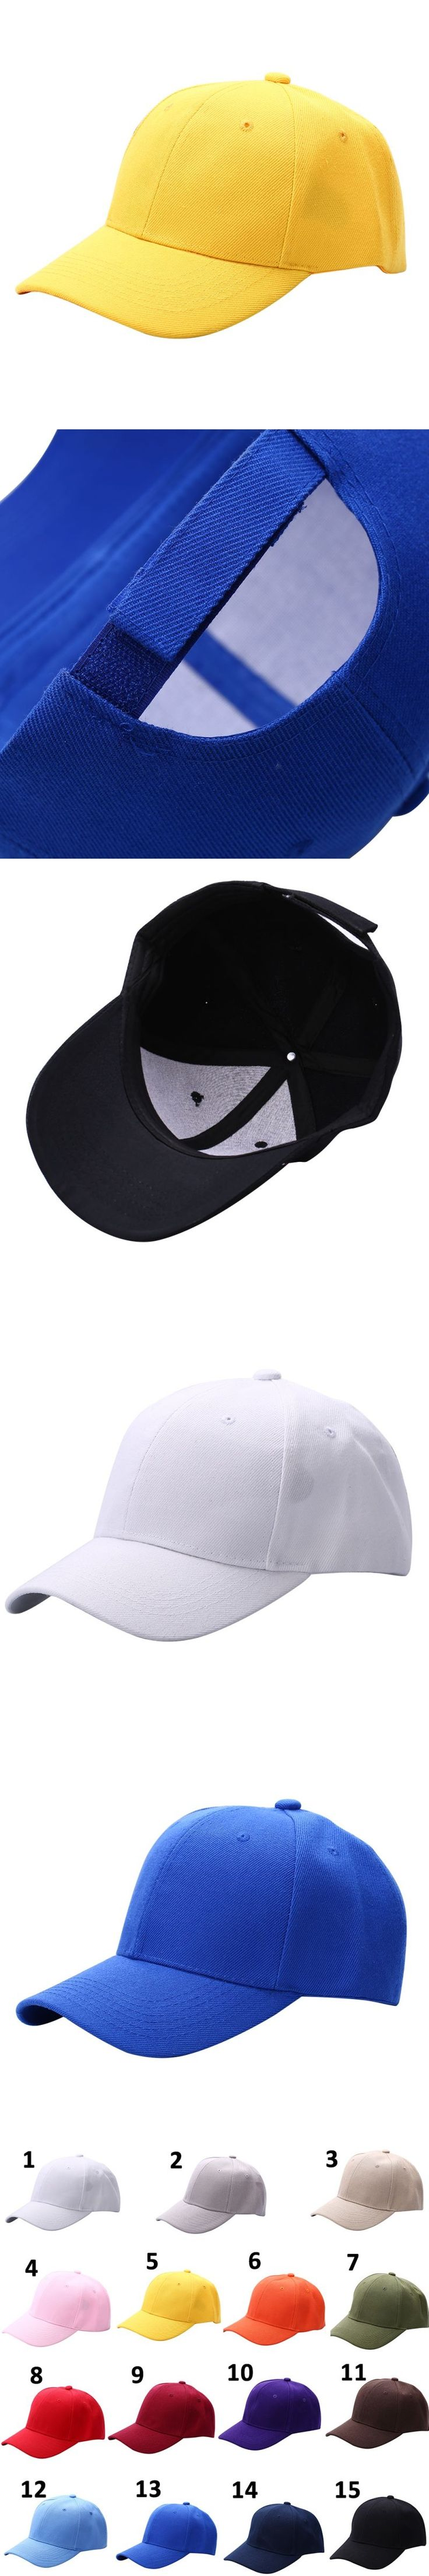 Plain Baseball Cap Unisex Curved Visor Hat Hip-Hop Adjustable Peaked Hat Visor Caps Solid Color For Men and Women